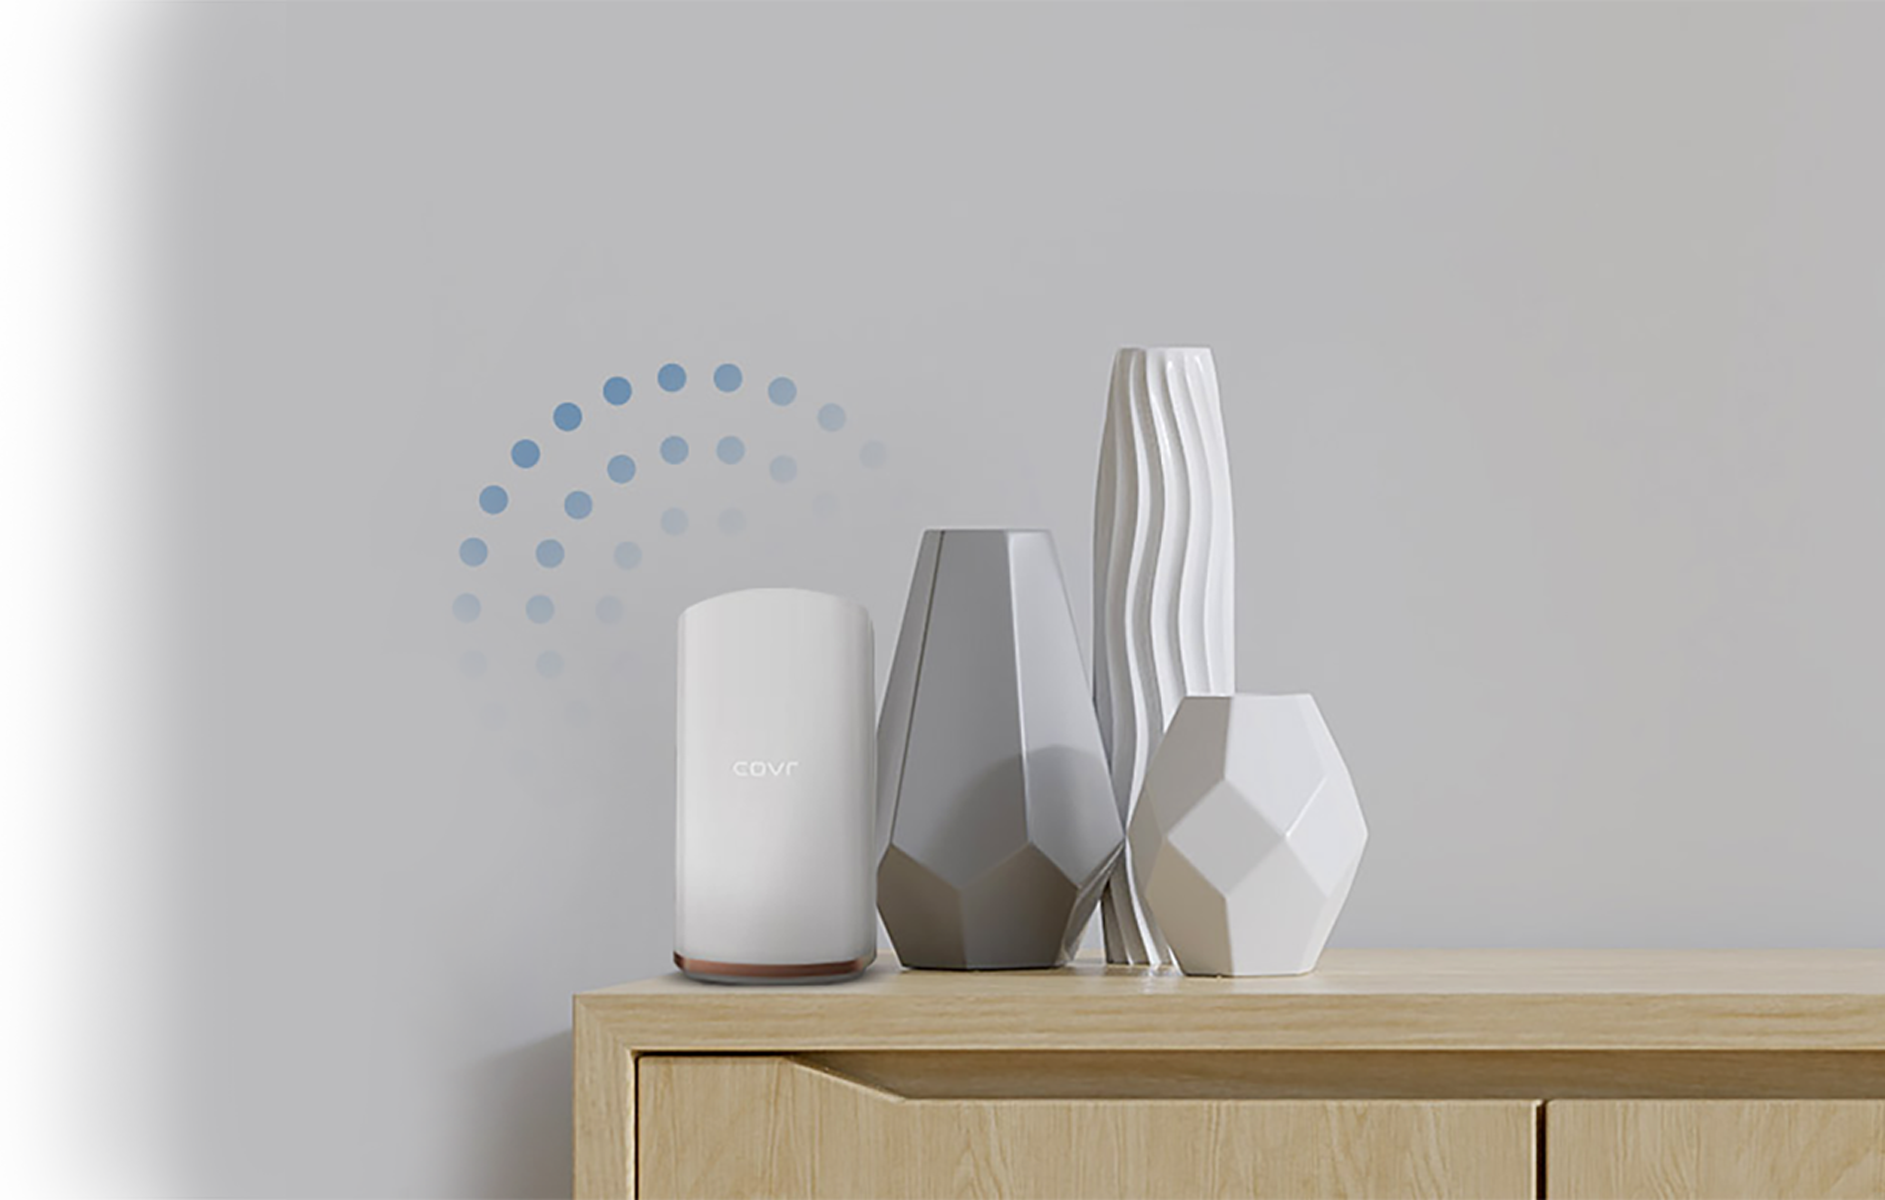 Covr blends into your home and gives you better WiFi coverage